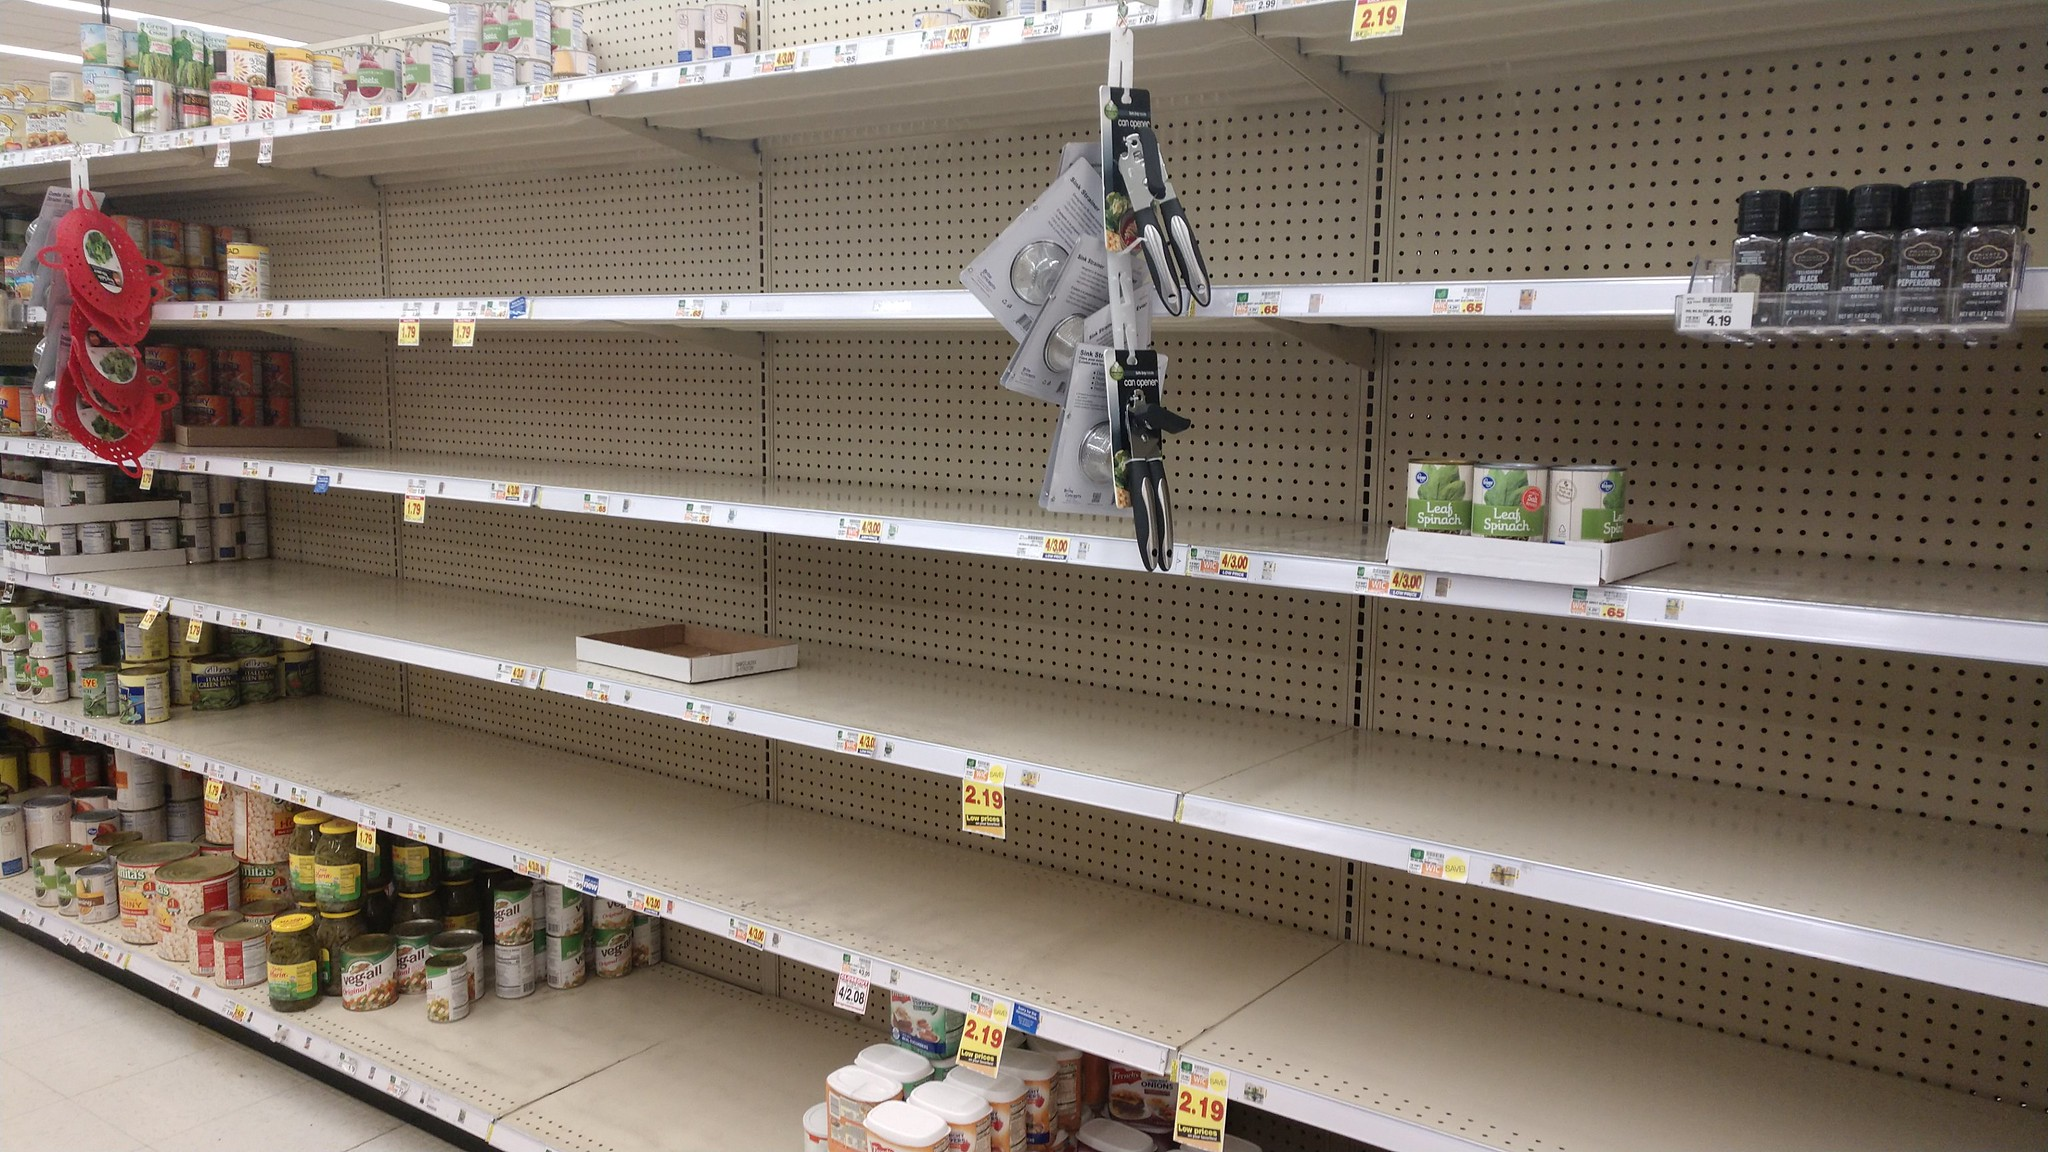 Nearly empty grocery store shelves, in the canned goods section.